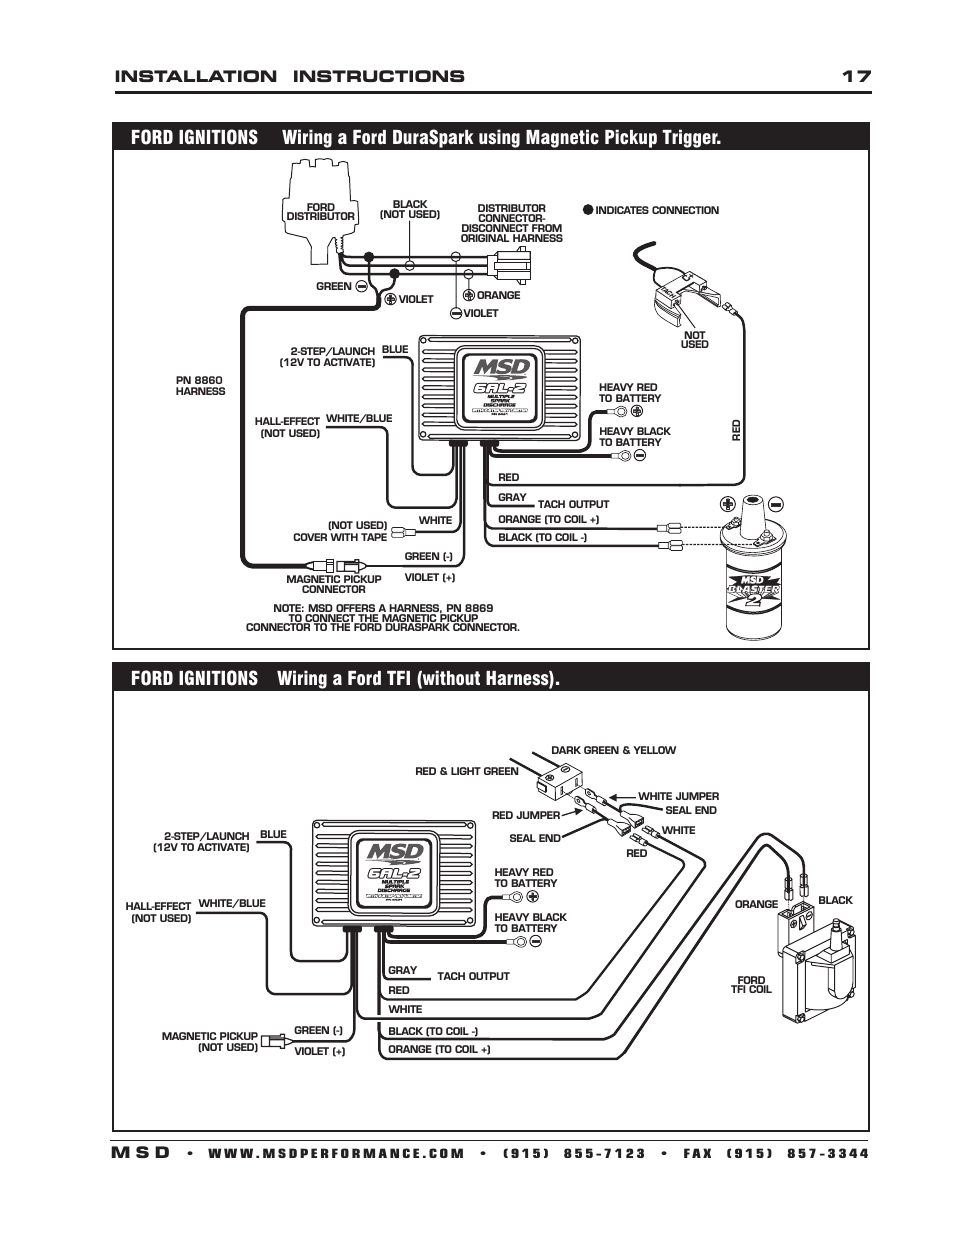 1985 Ford Duraspark Wiring Diagram Full Hd Version Wiring Diagram Thisdiagram Yti Fr